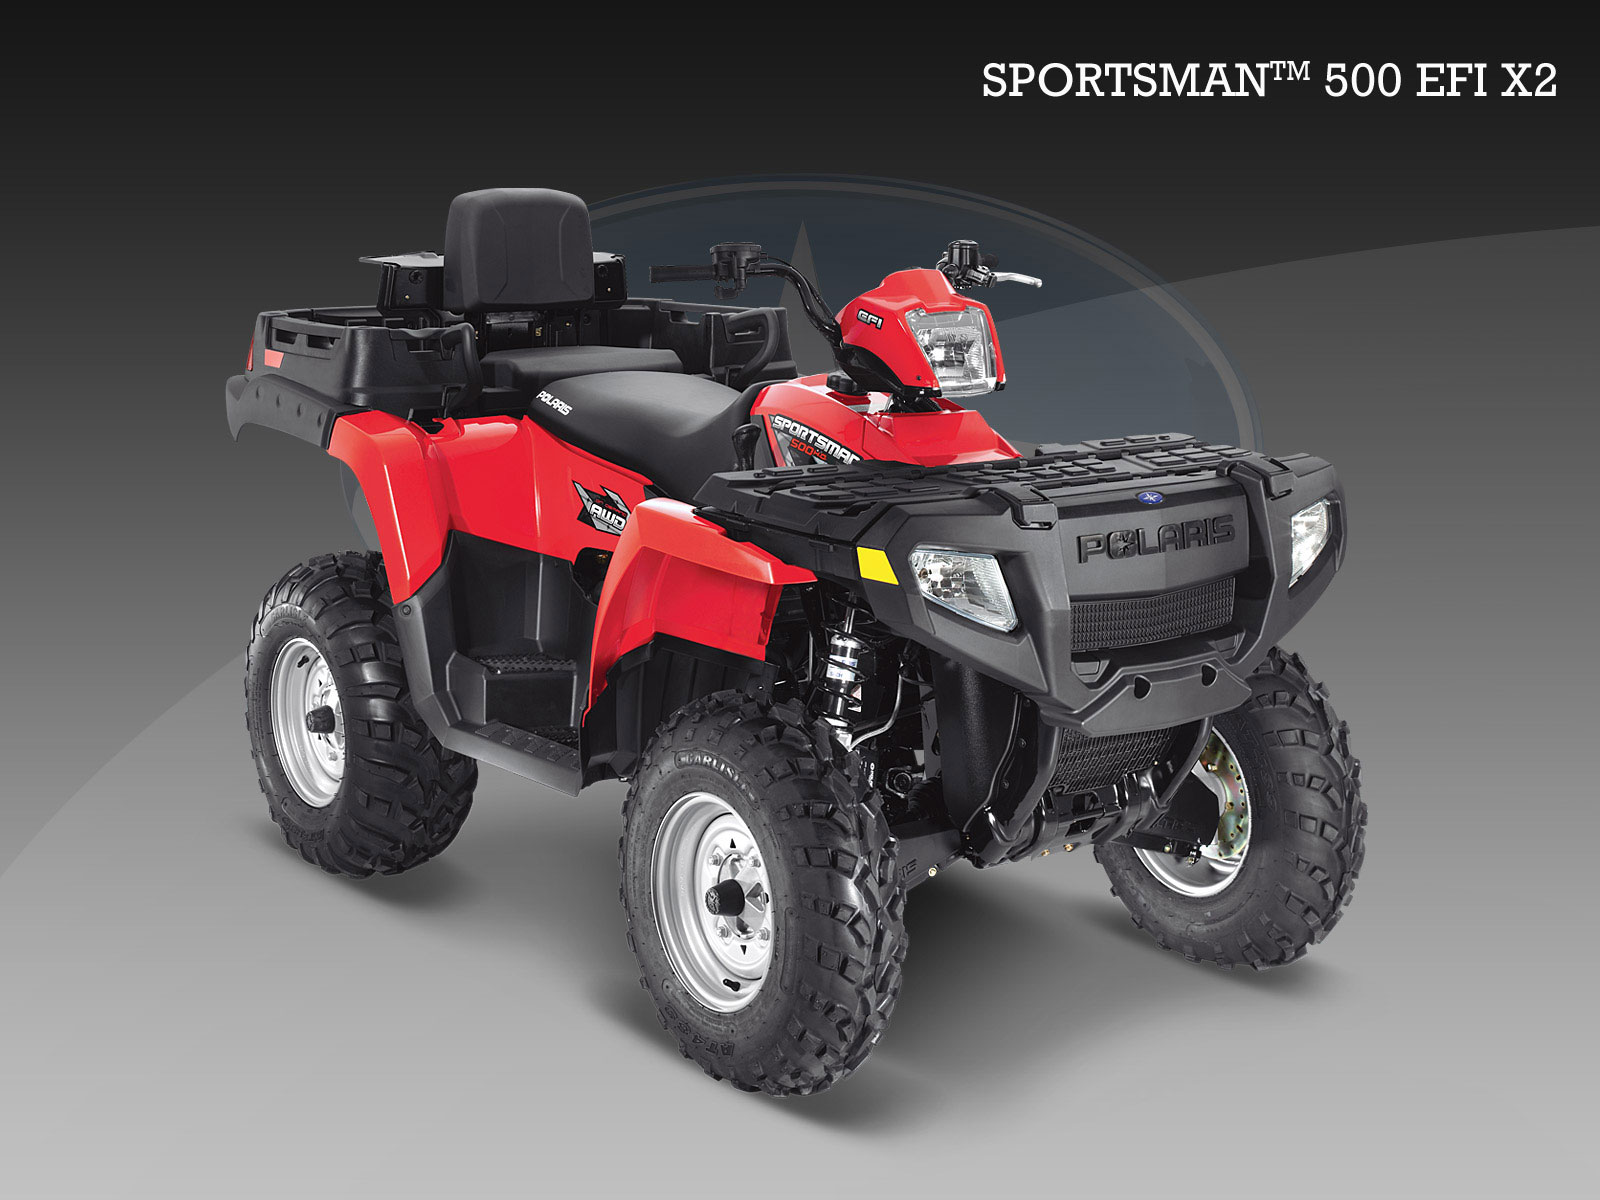 2009 polaris sportsman 500 efi x2. Black Bedroom Furniture Sets. Home Design Ideas